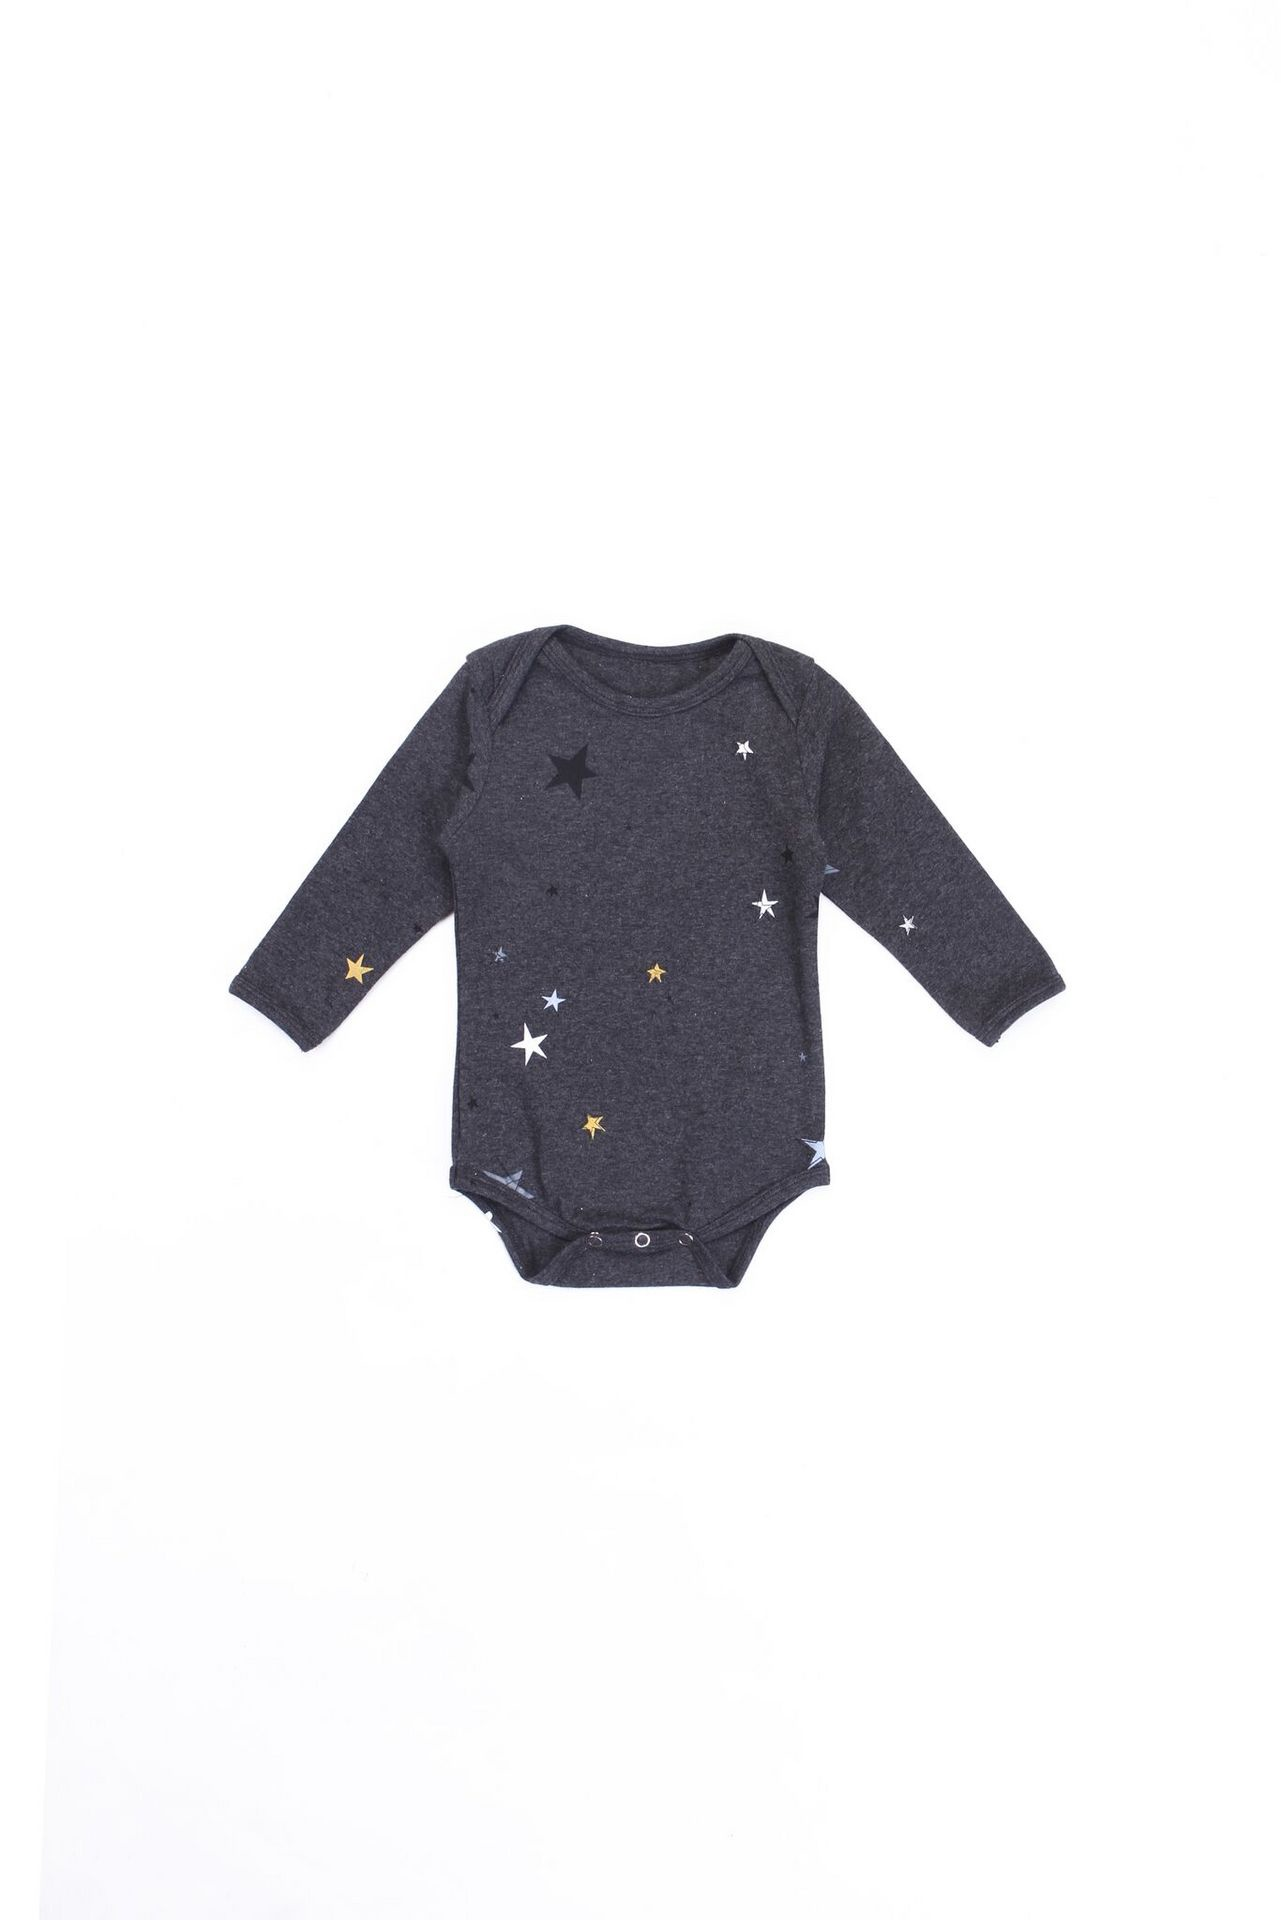 Alex and Ant Star Onesie Charcoal